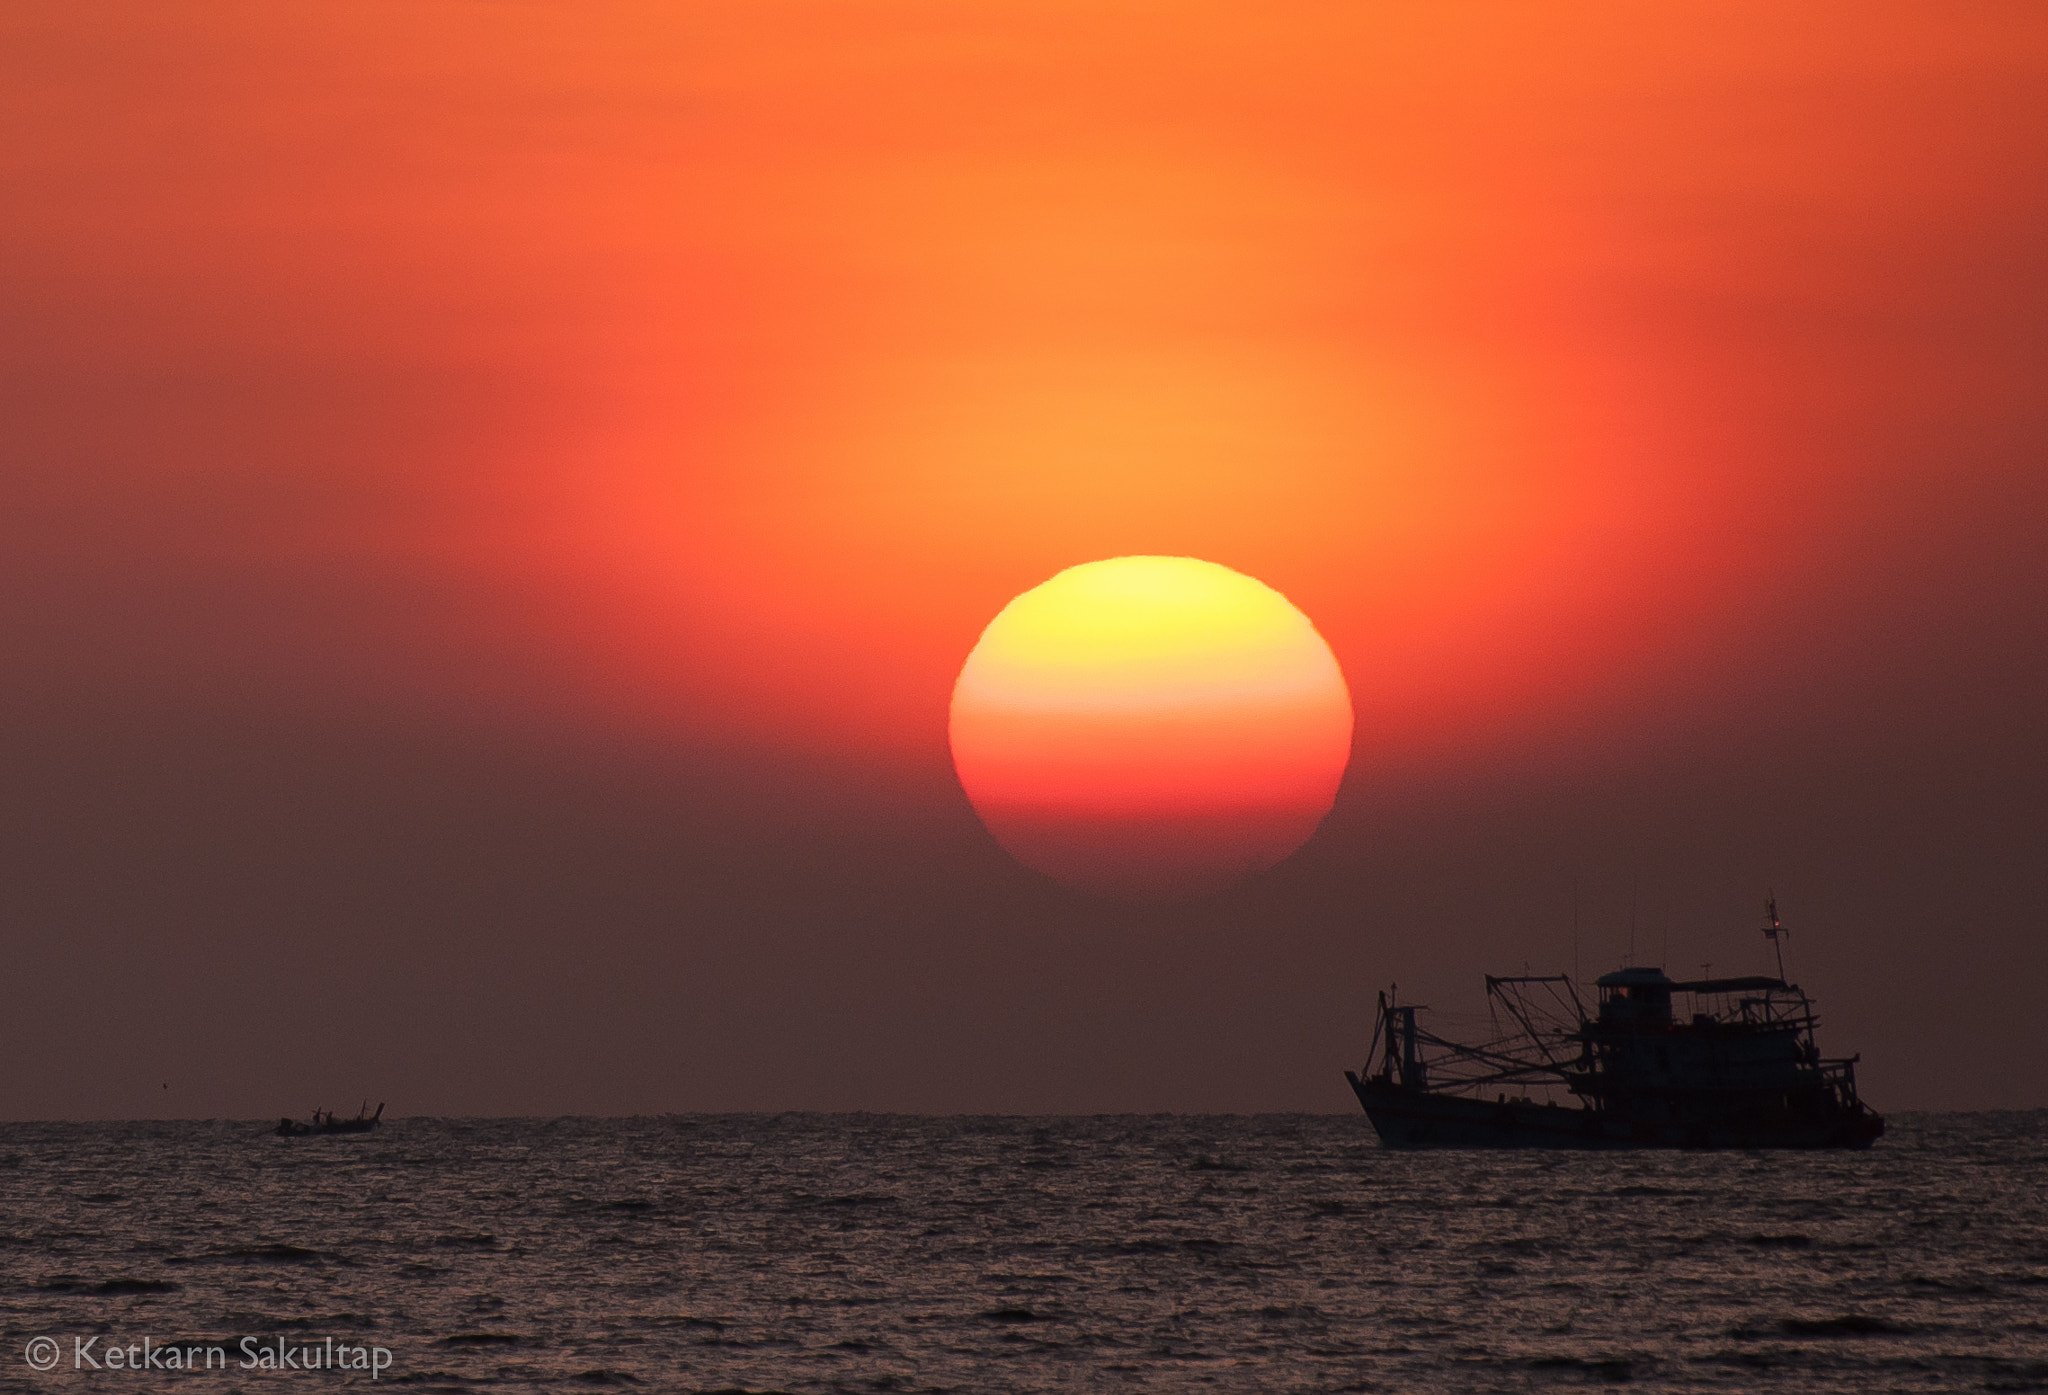 Photograph I'm Coming Back Home by Ketkarn Sakultap on 500px